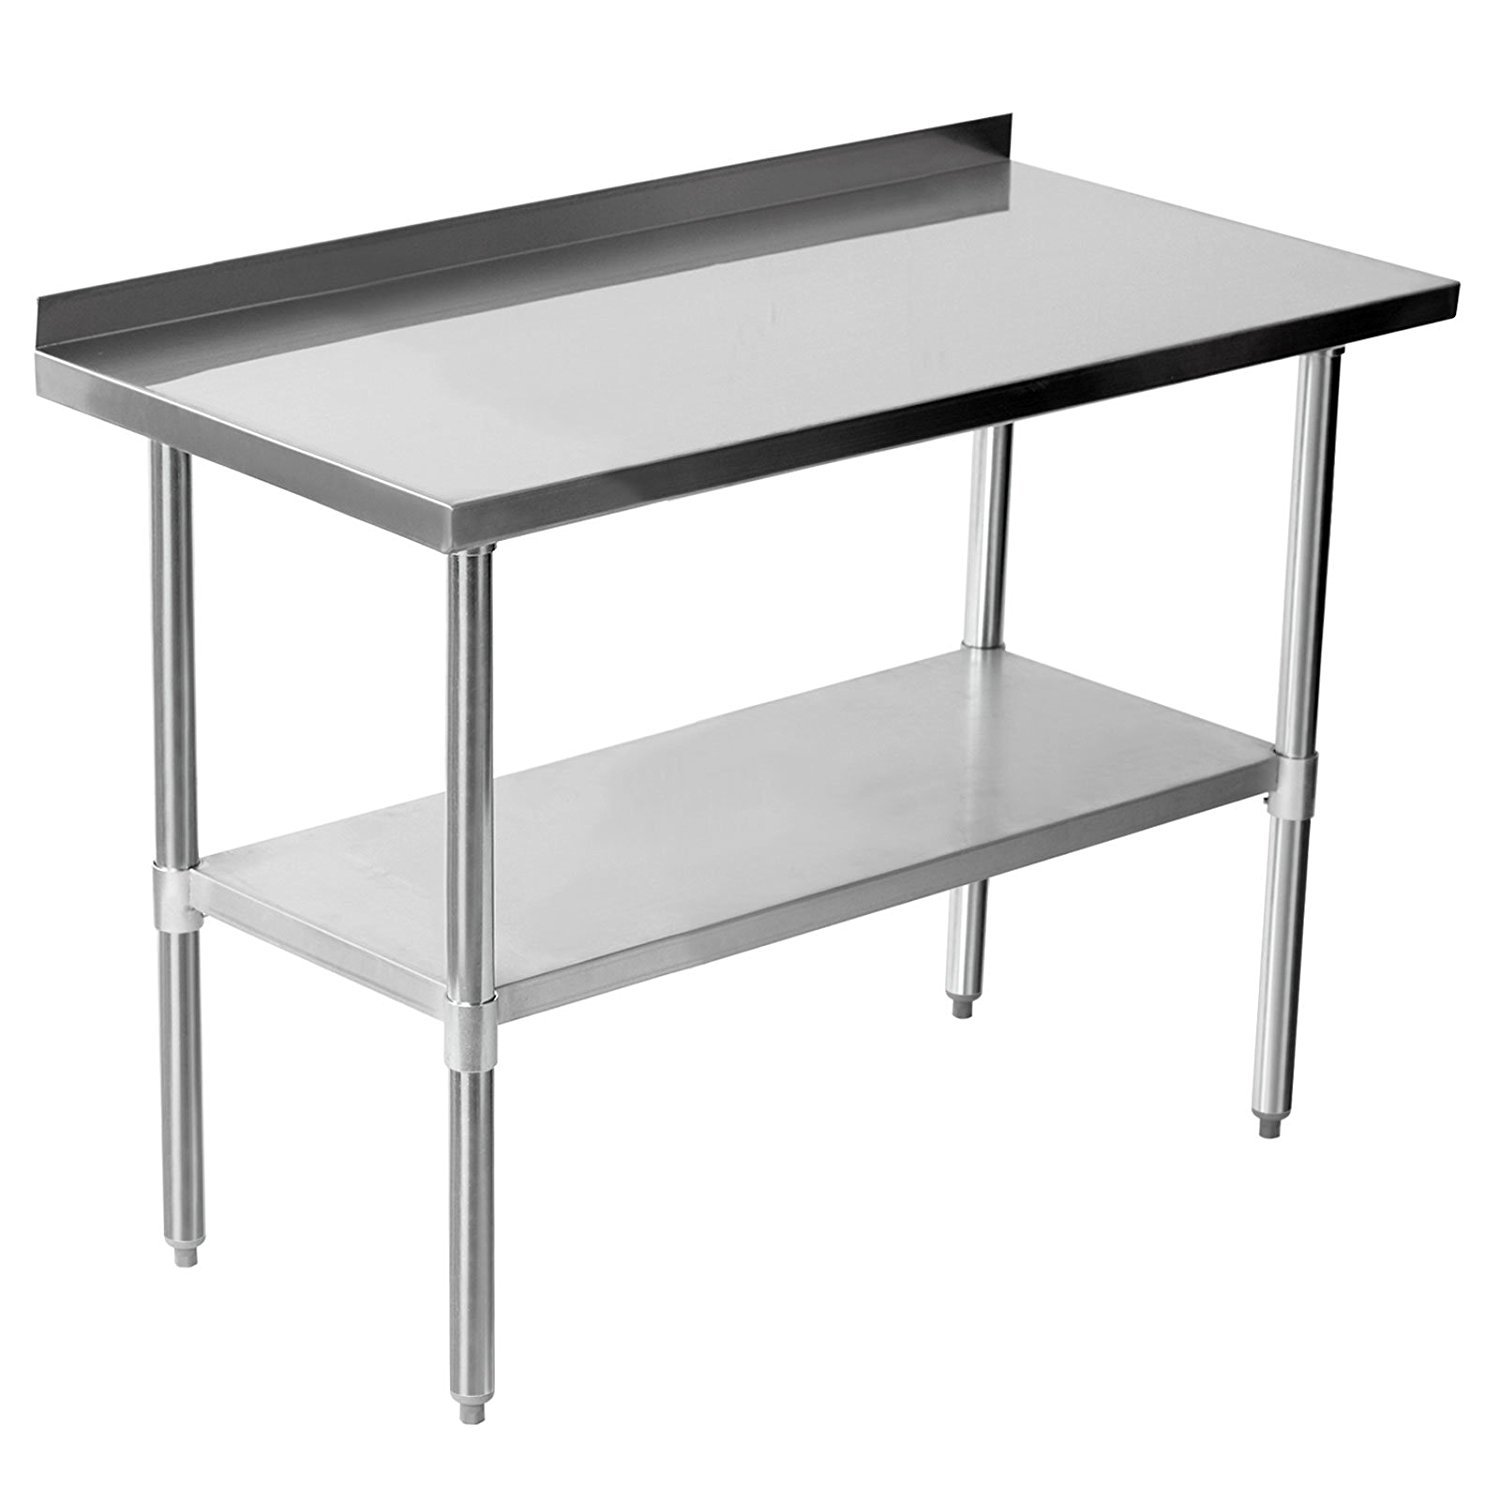 Quattro Value Line 1200mm Wide Stainless Steel Catering Wall Bench